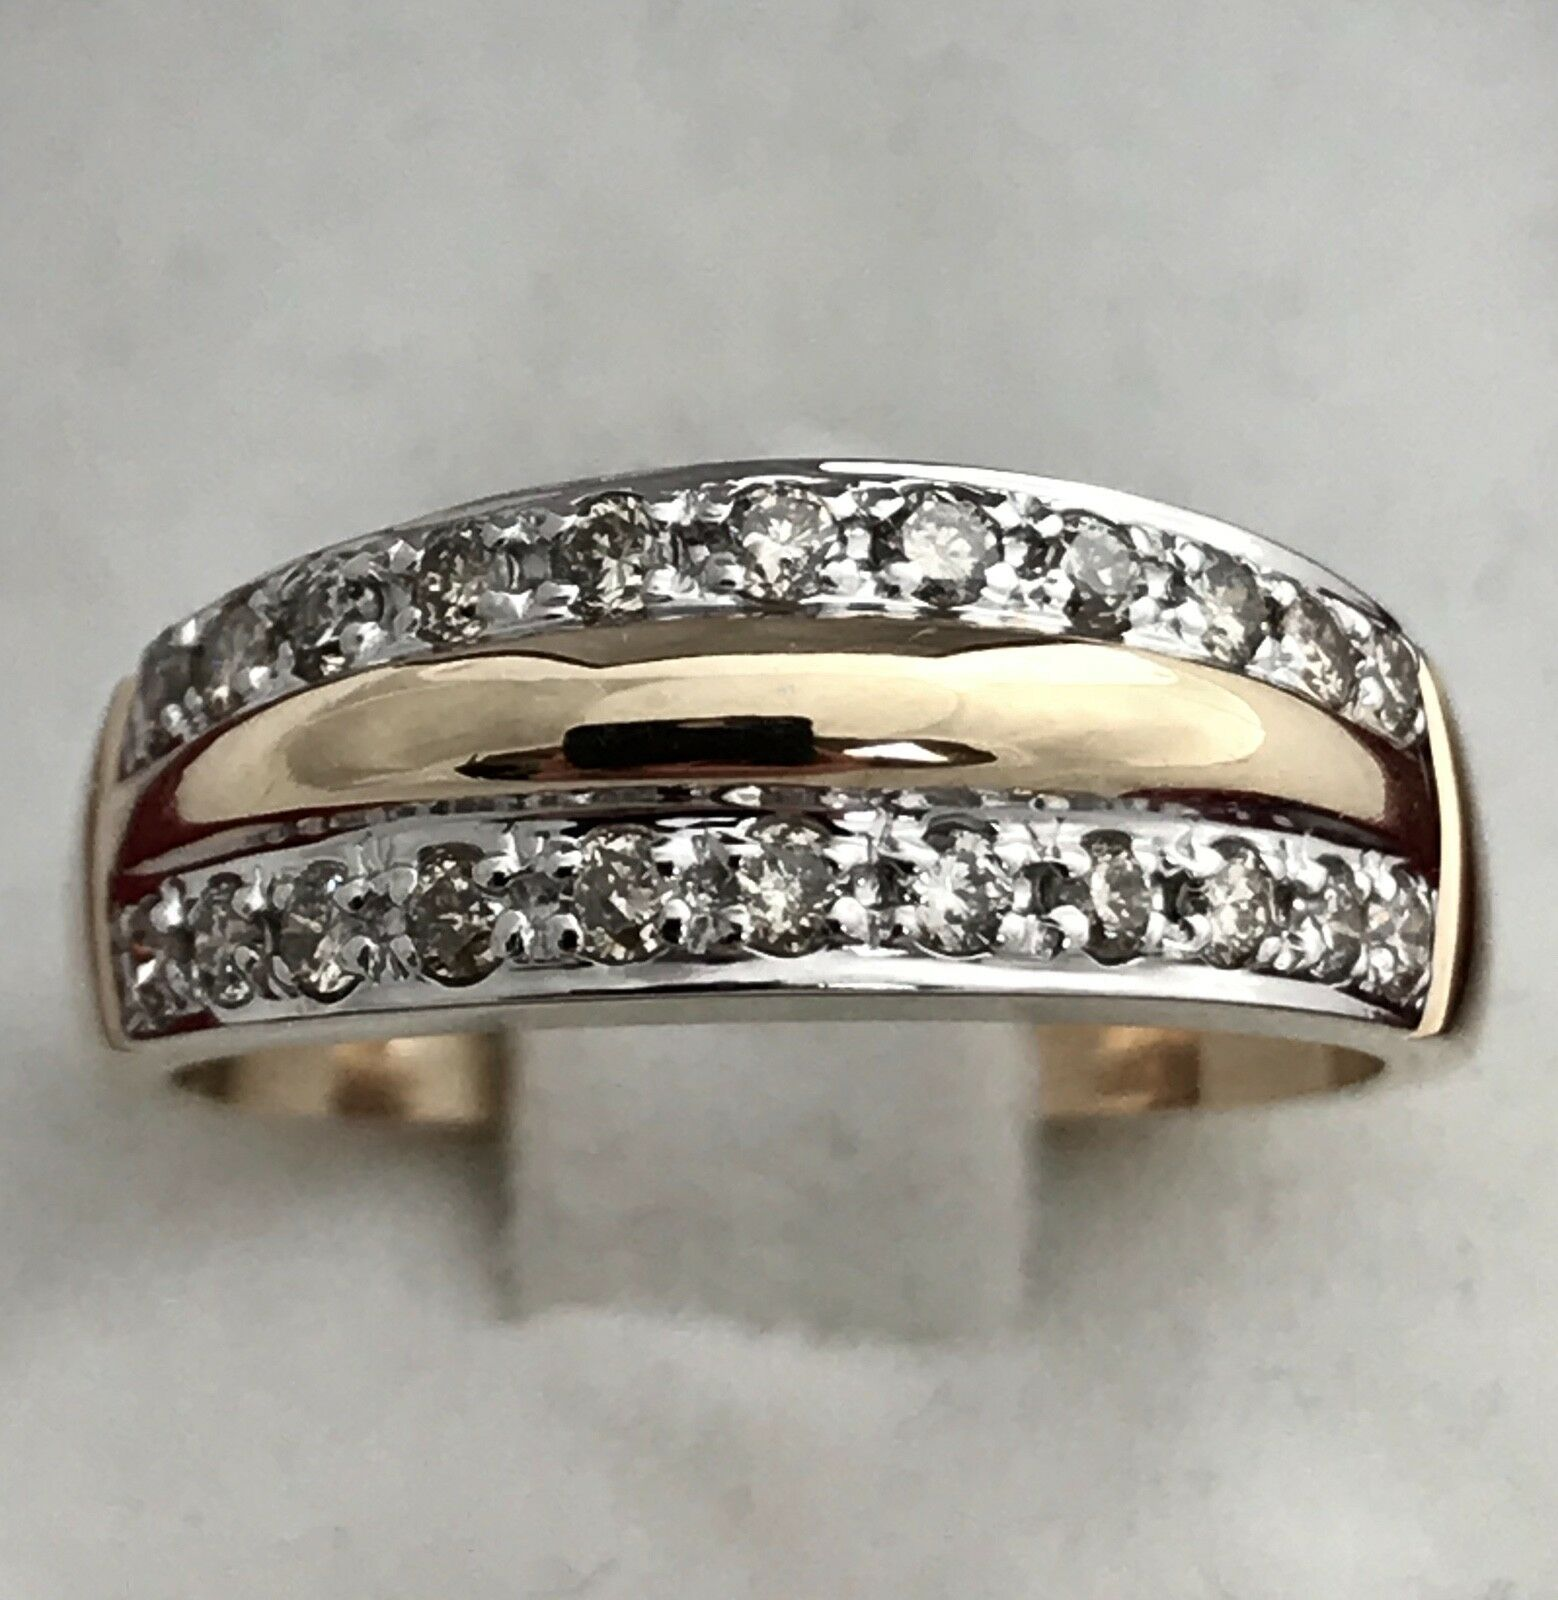 DIAMOND RING IN 14K YELLOW & WHITE gold SET WITH APPR. 0.40 CARAT OF DIAMONDS